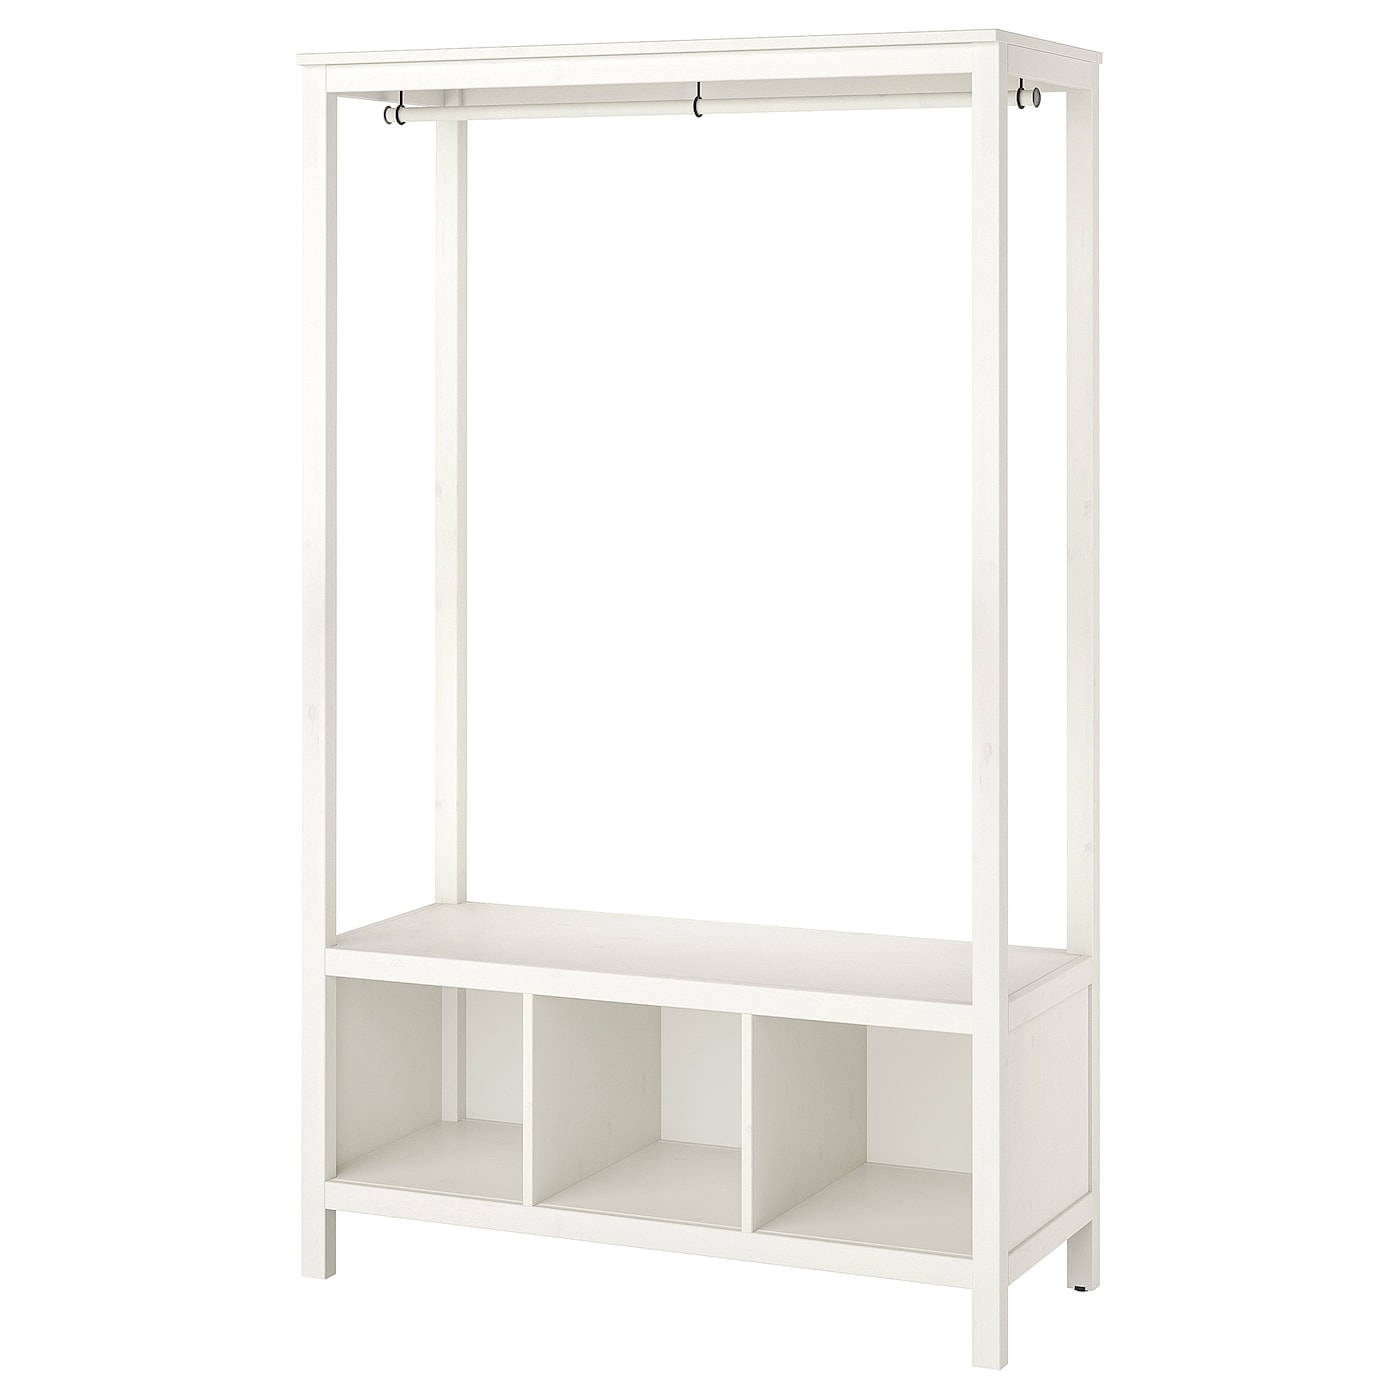 IKEA HEMNES open wardrobe Made of solid wood, which is a hardwearing and warm natural material.